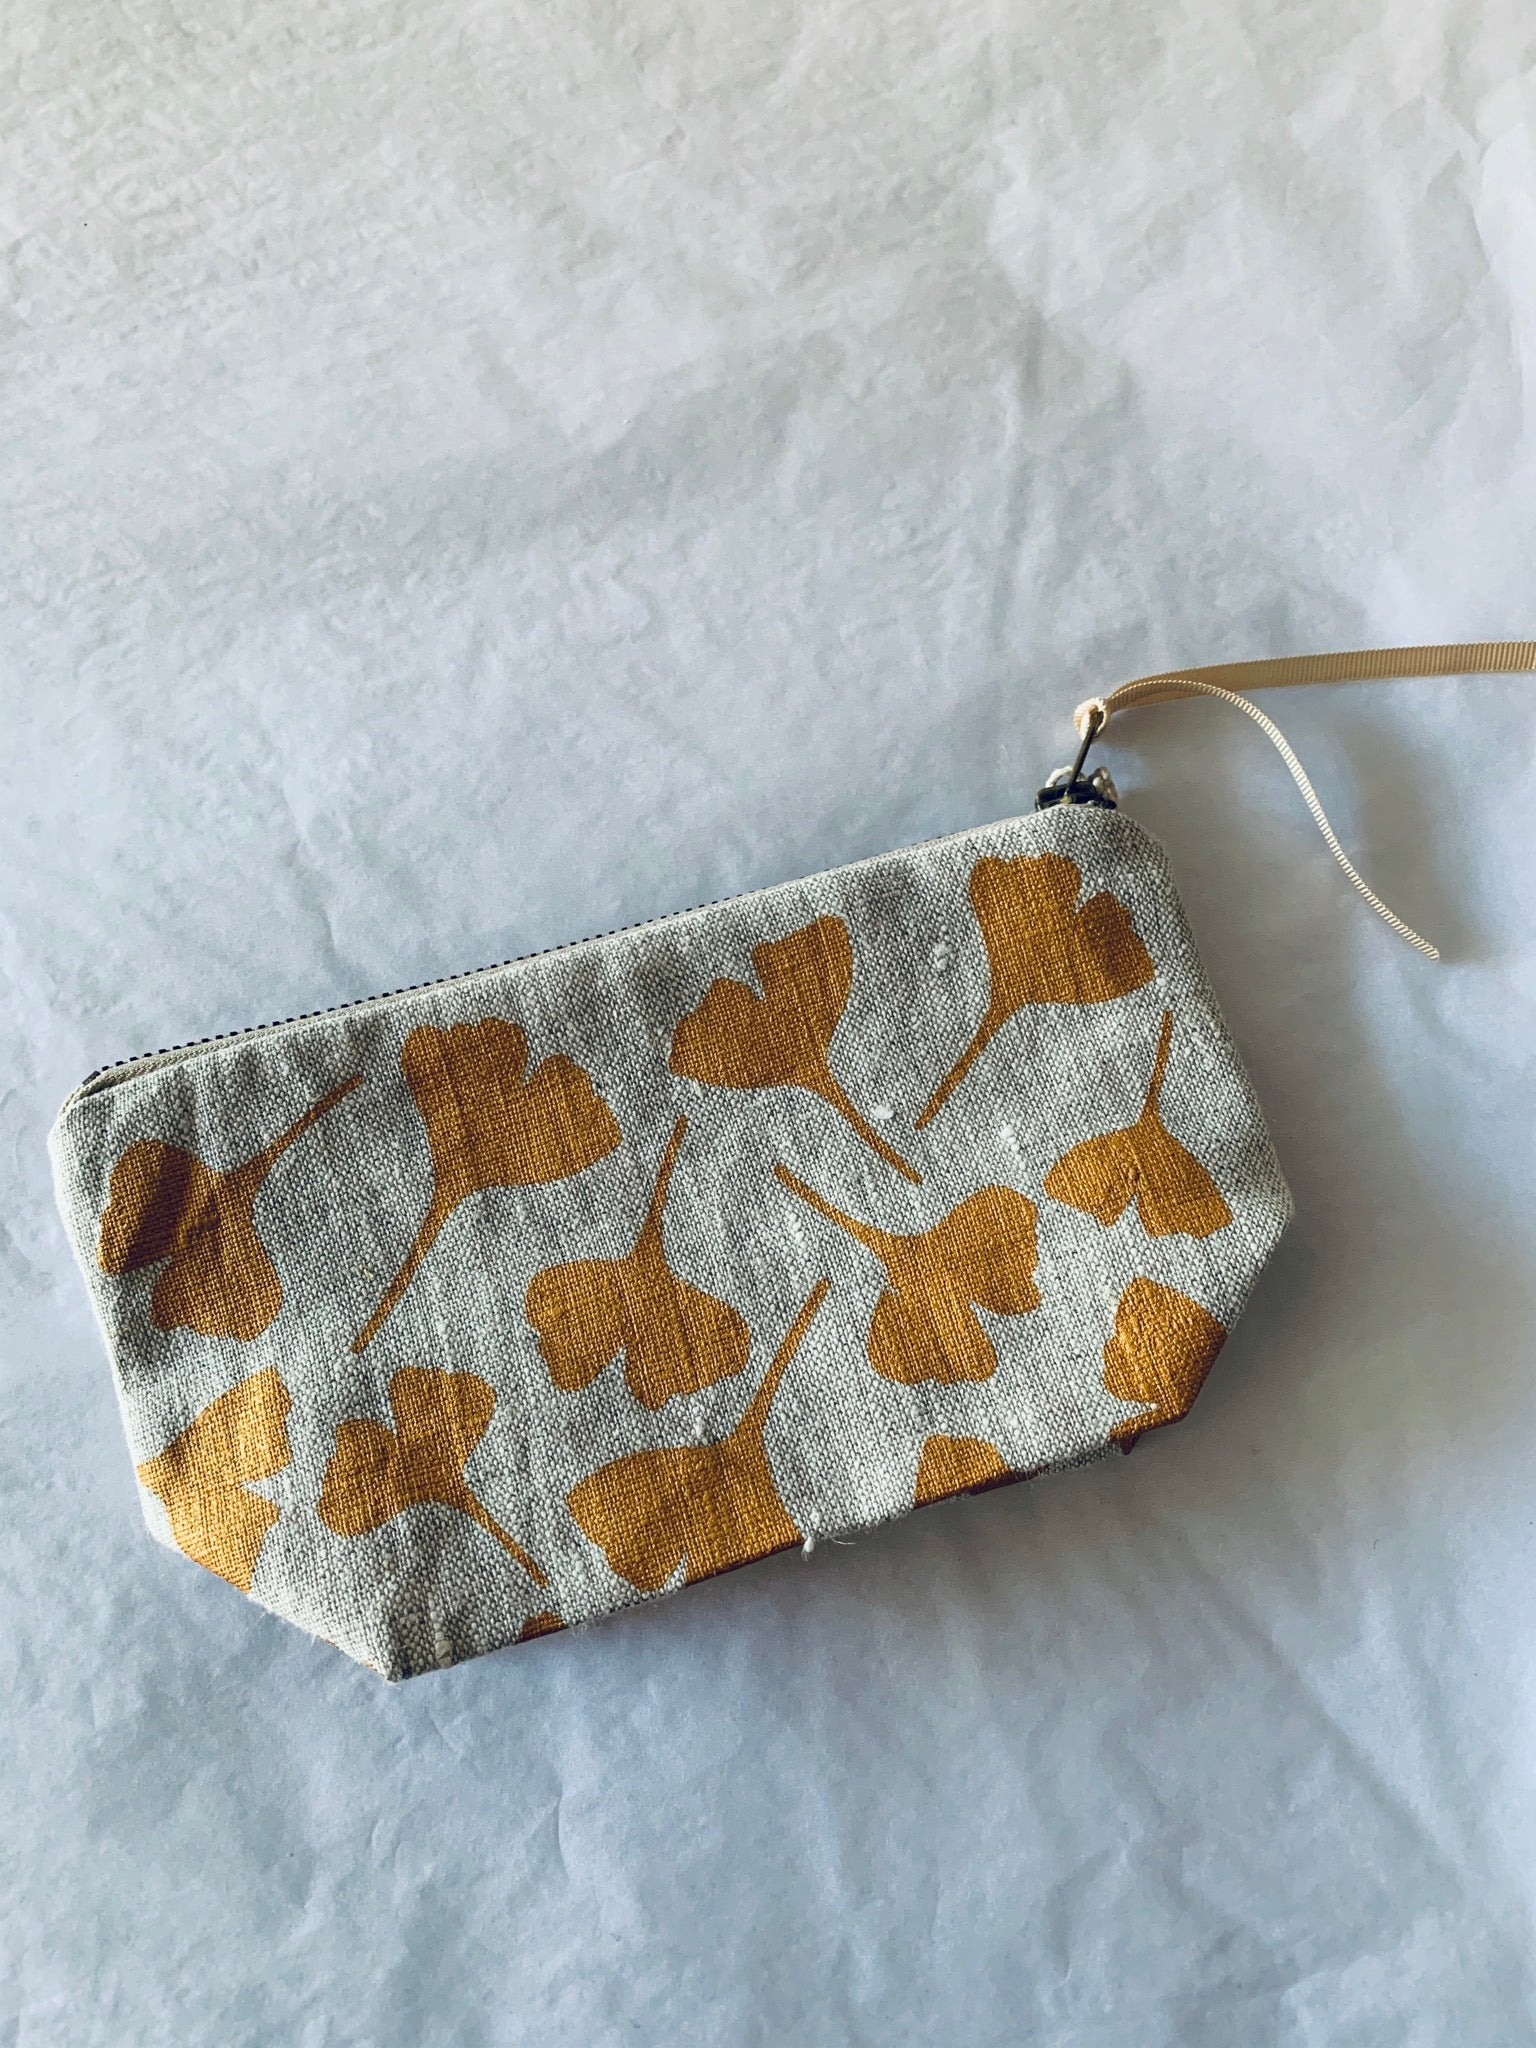 Lamina Godman zip purse: Gingko Leaves